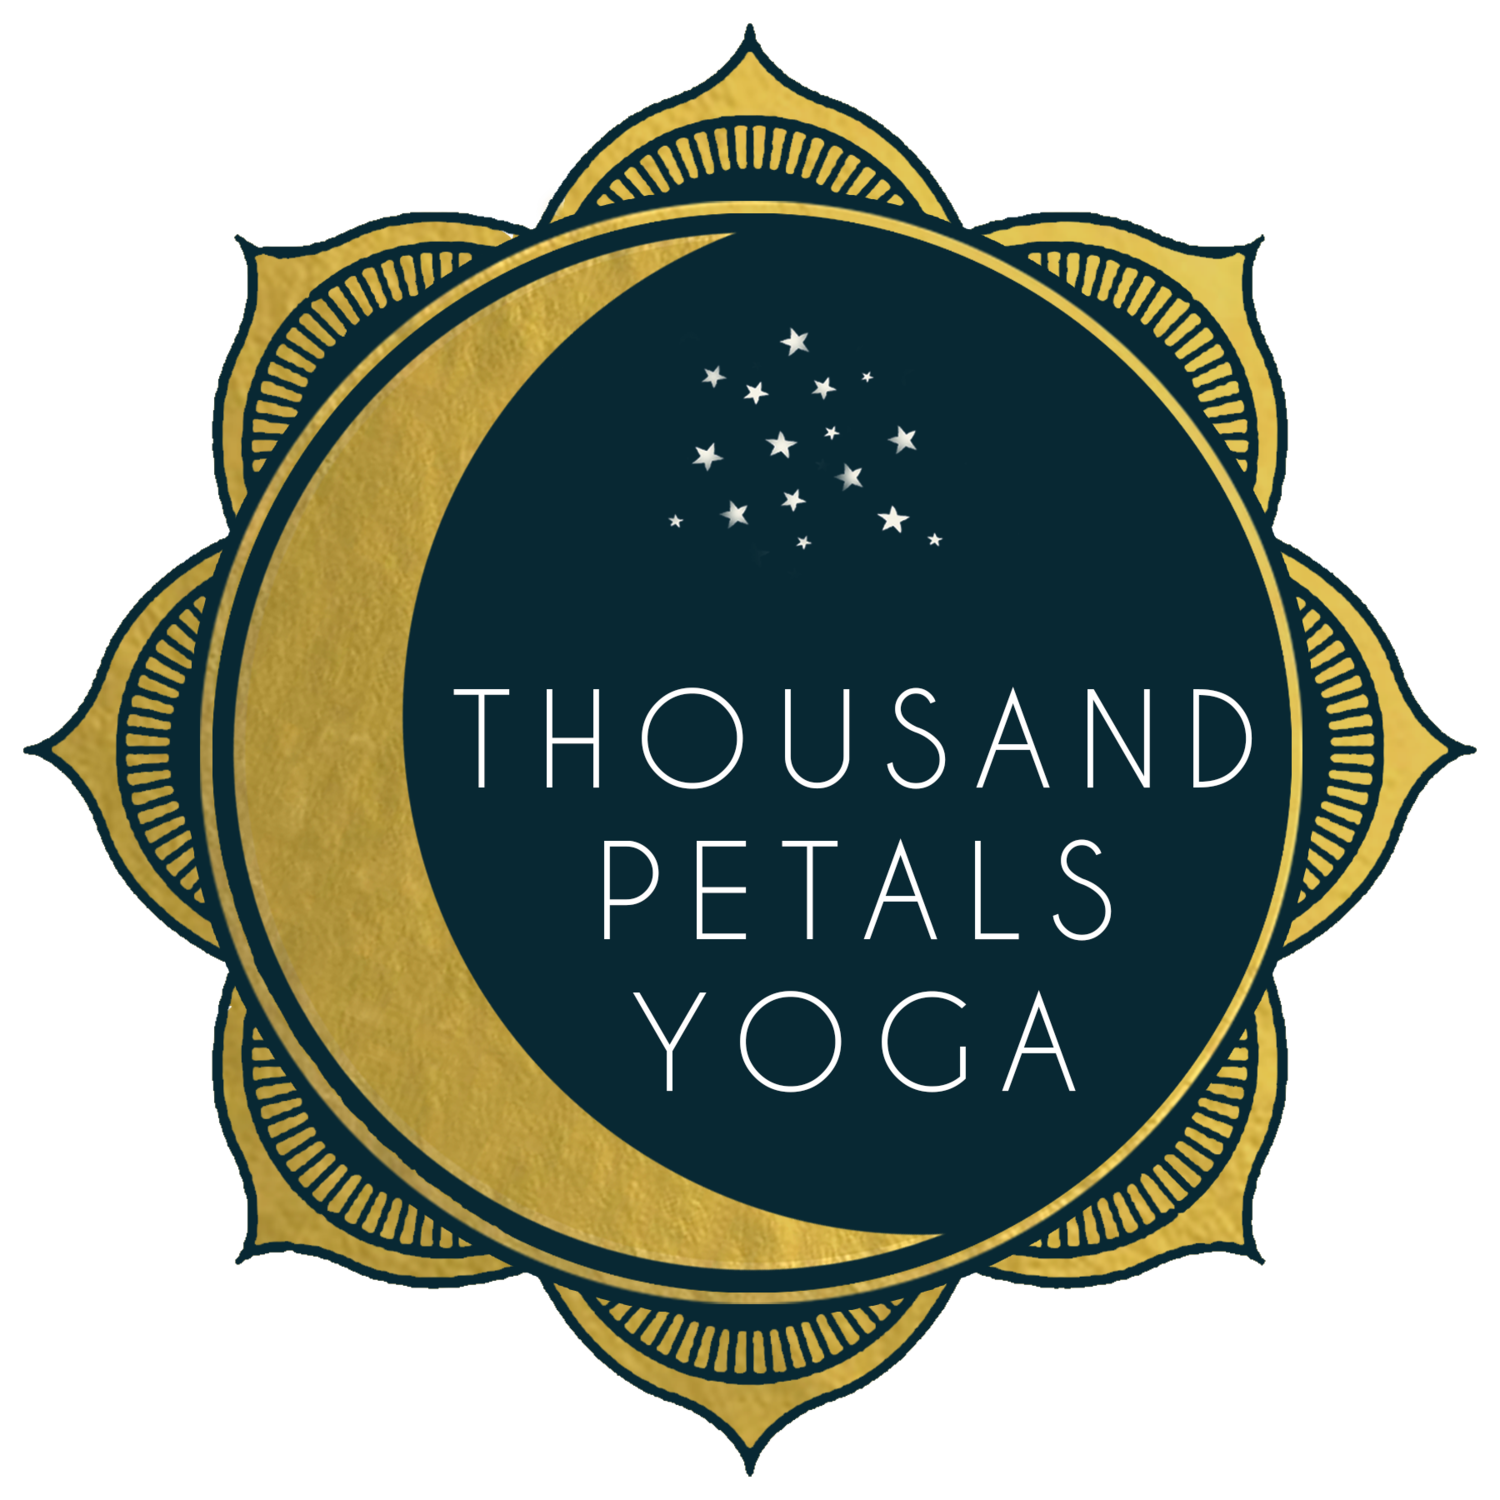 Thousand Petals Yoga